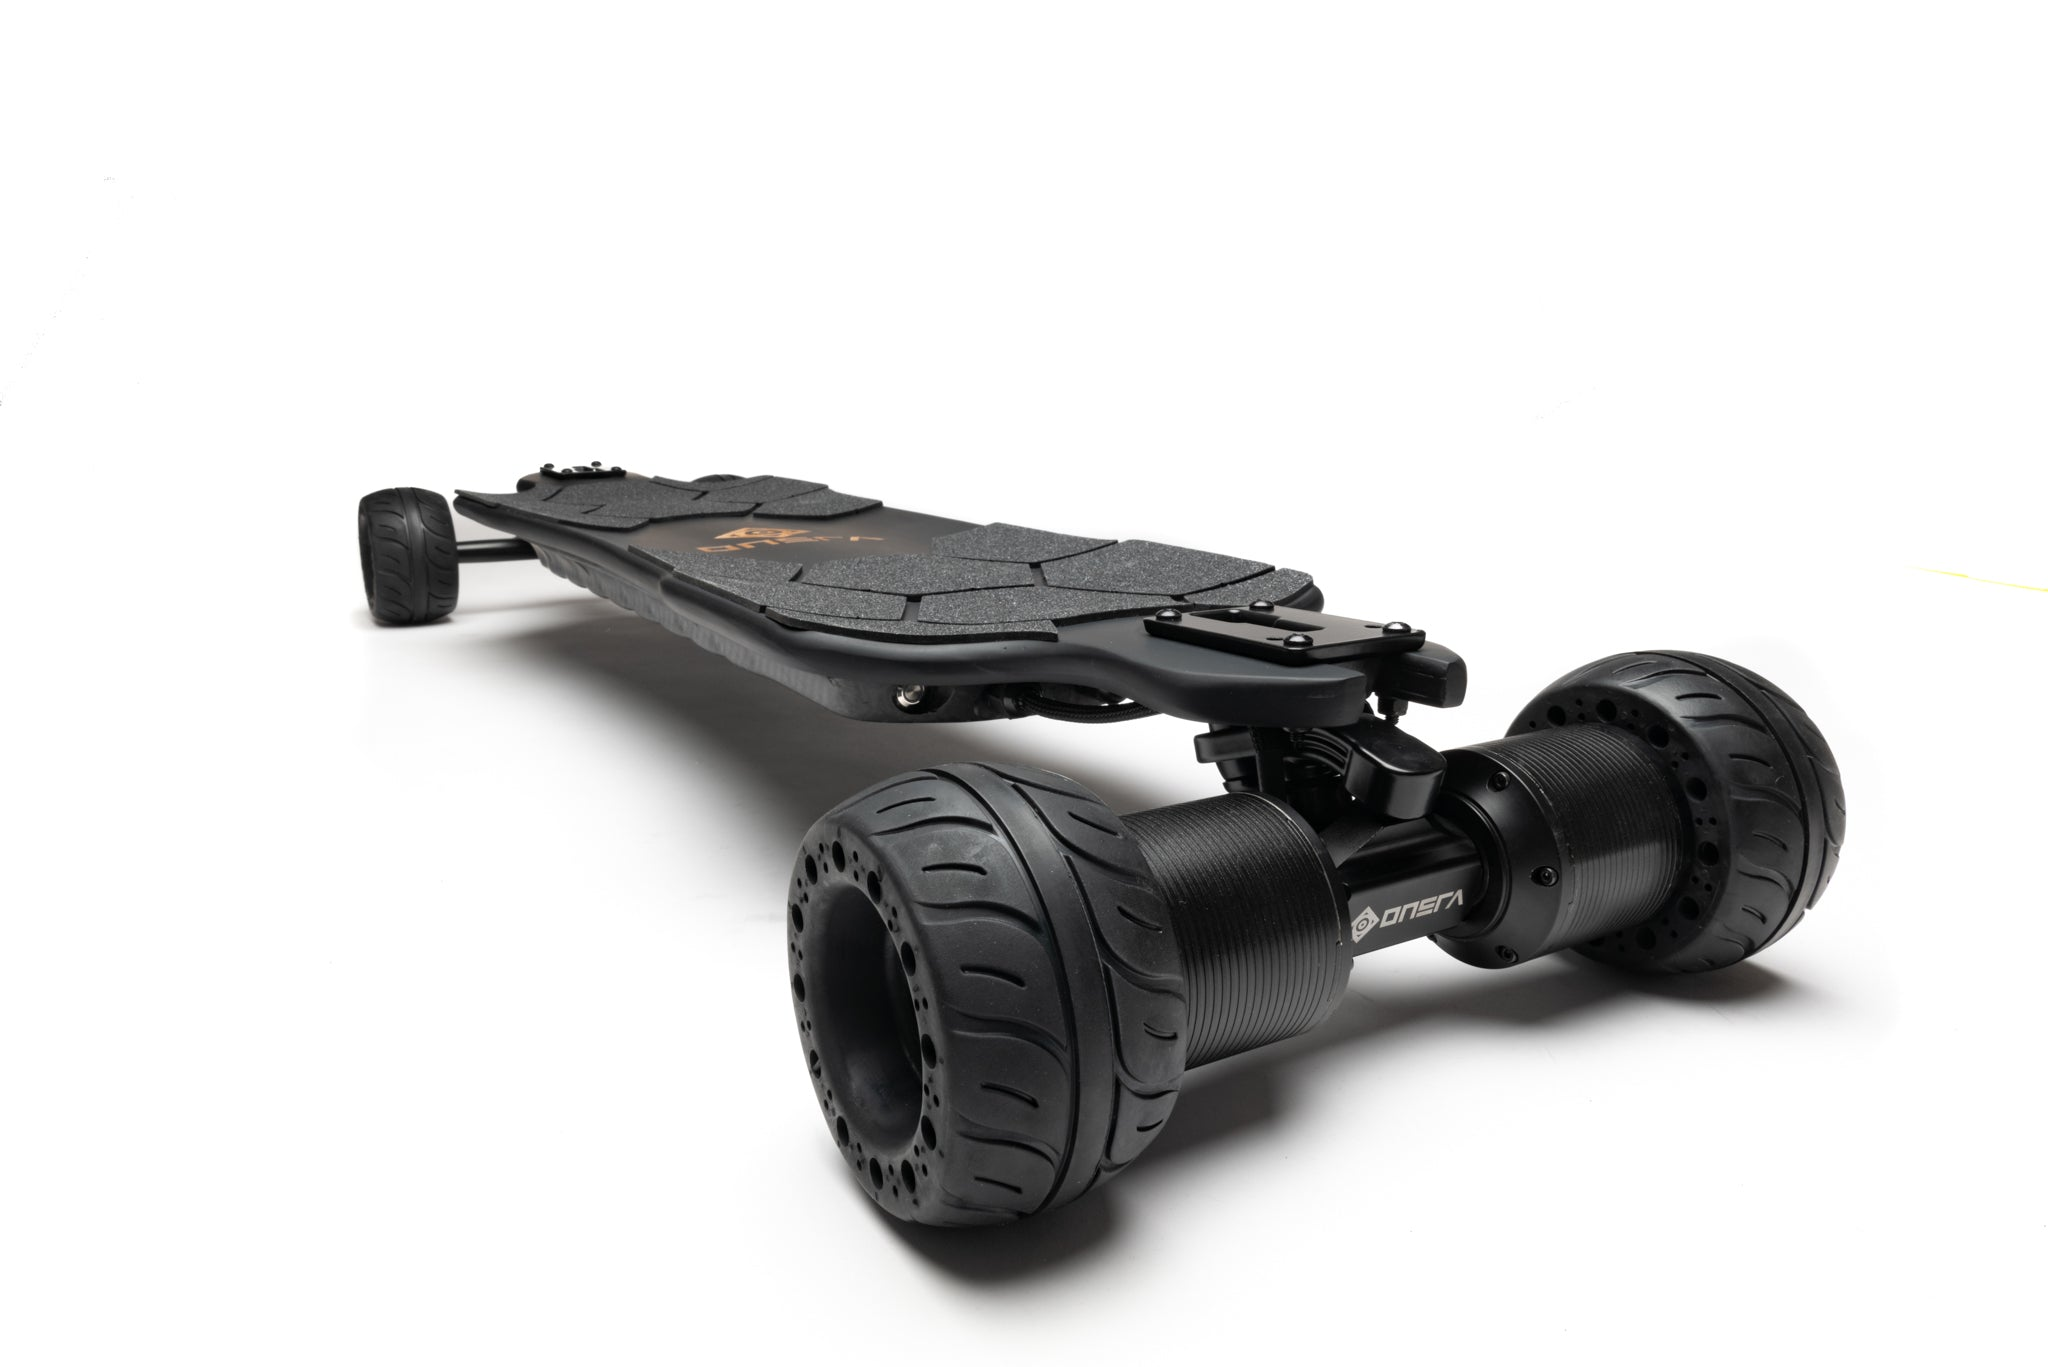 ONSRA BLACK Carve 2 - Direct Drive - Electric Skateboard 2021